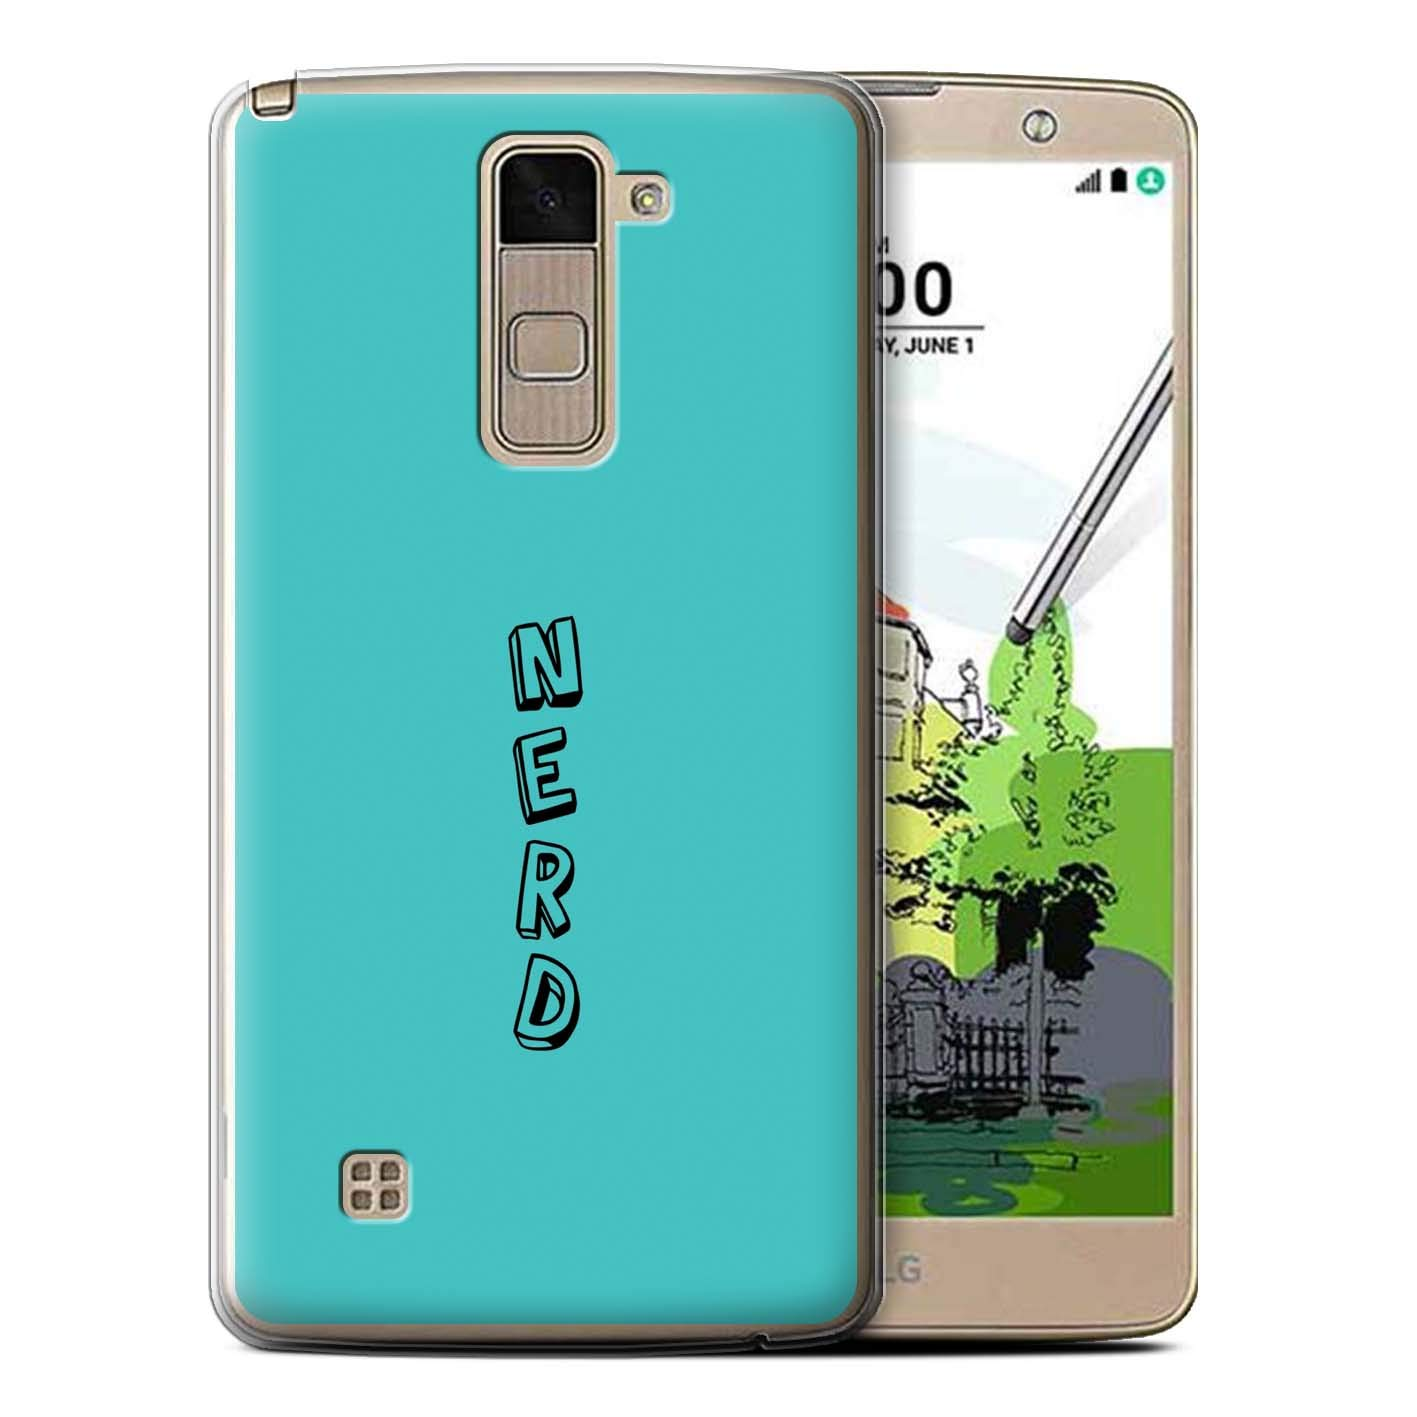 eSwish Gel TPU Phone Case/Cover for LG Stylo 2 Plus/MS550/K535 / Blue/Nerd Design/Doodle Words Collection